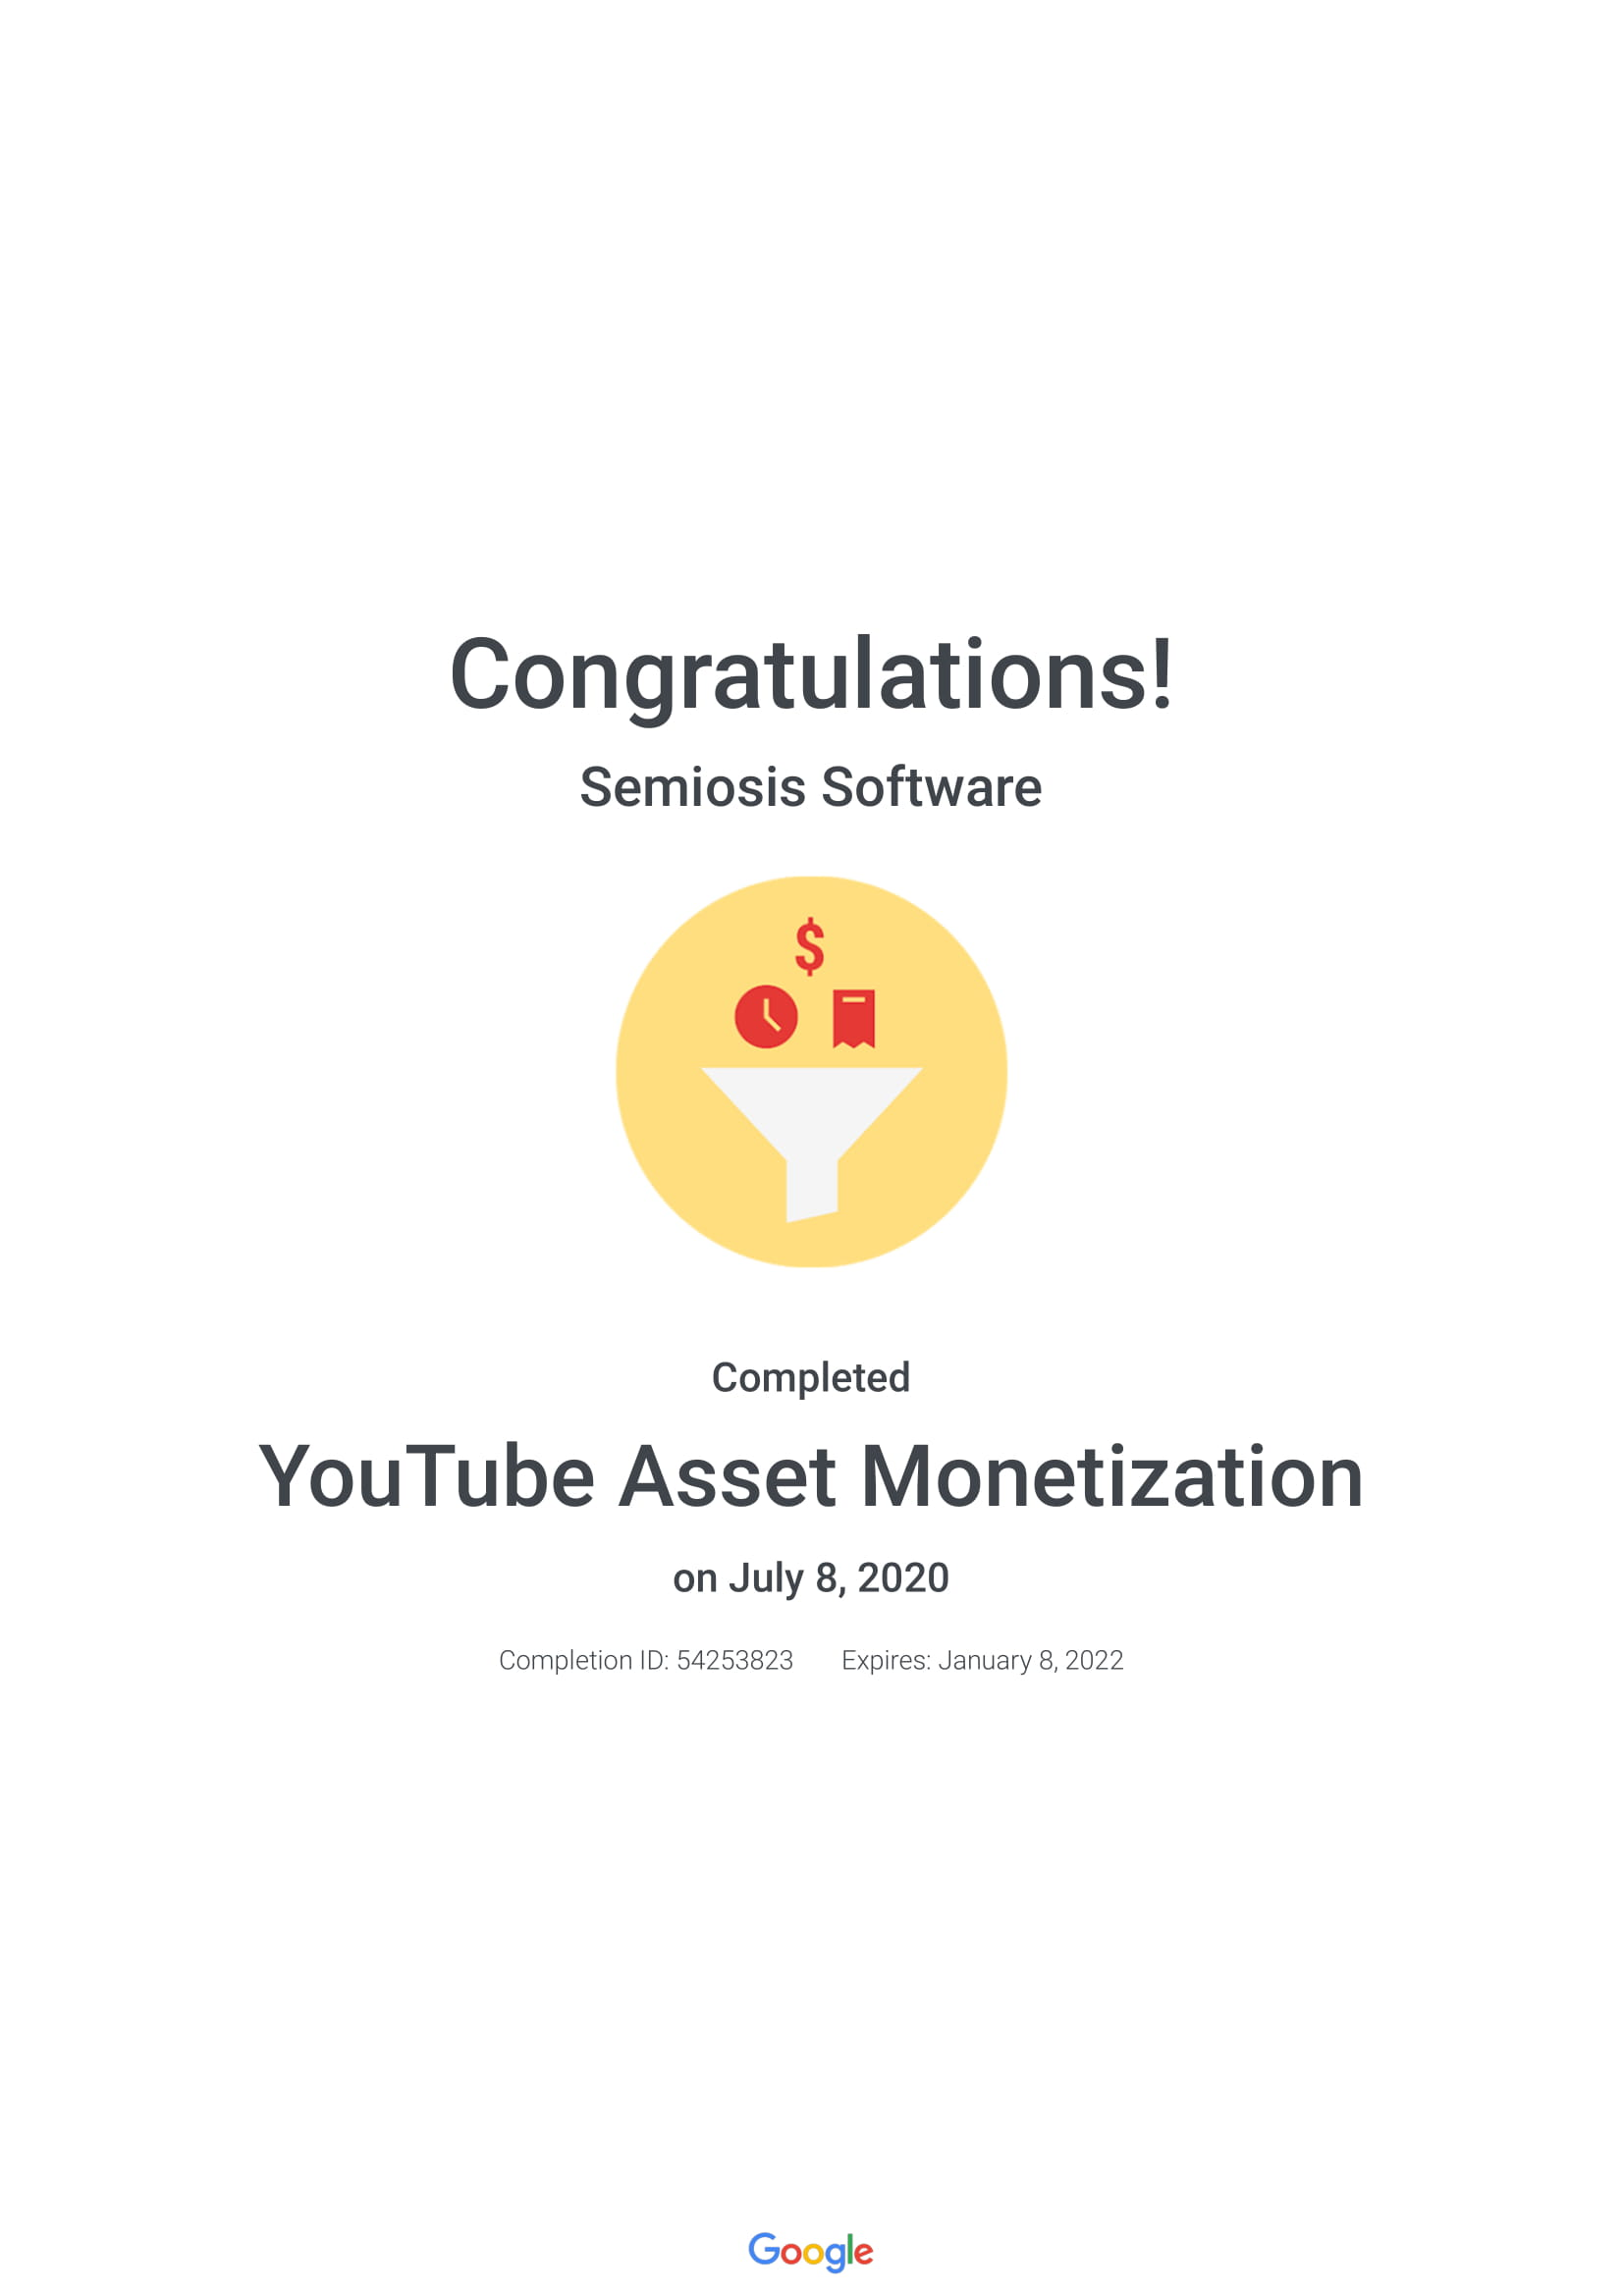 YouTube Asset Monetization